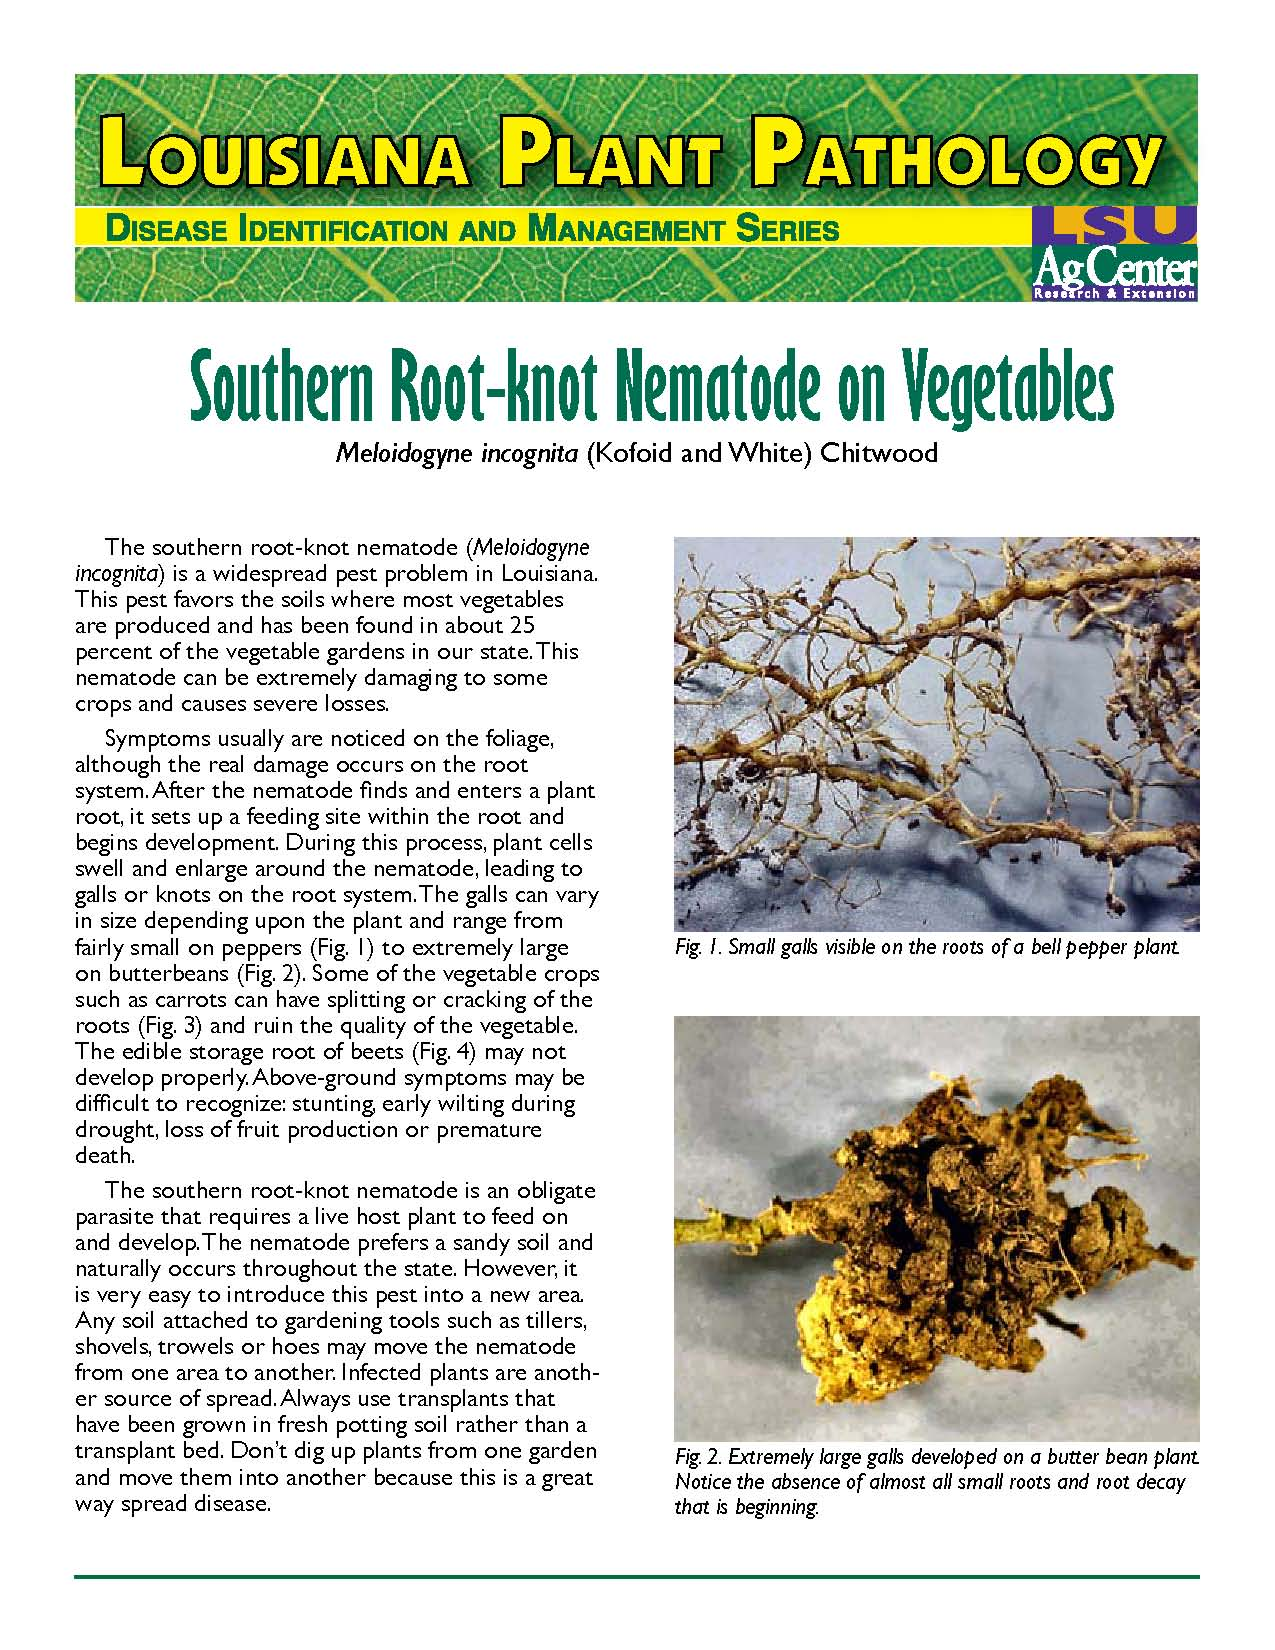 Louisiana Plant Pathology:  Southern Root-knot Nematode on Vegetables